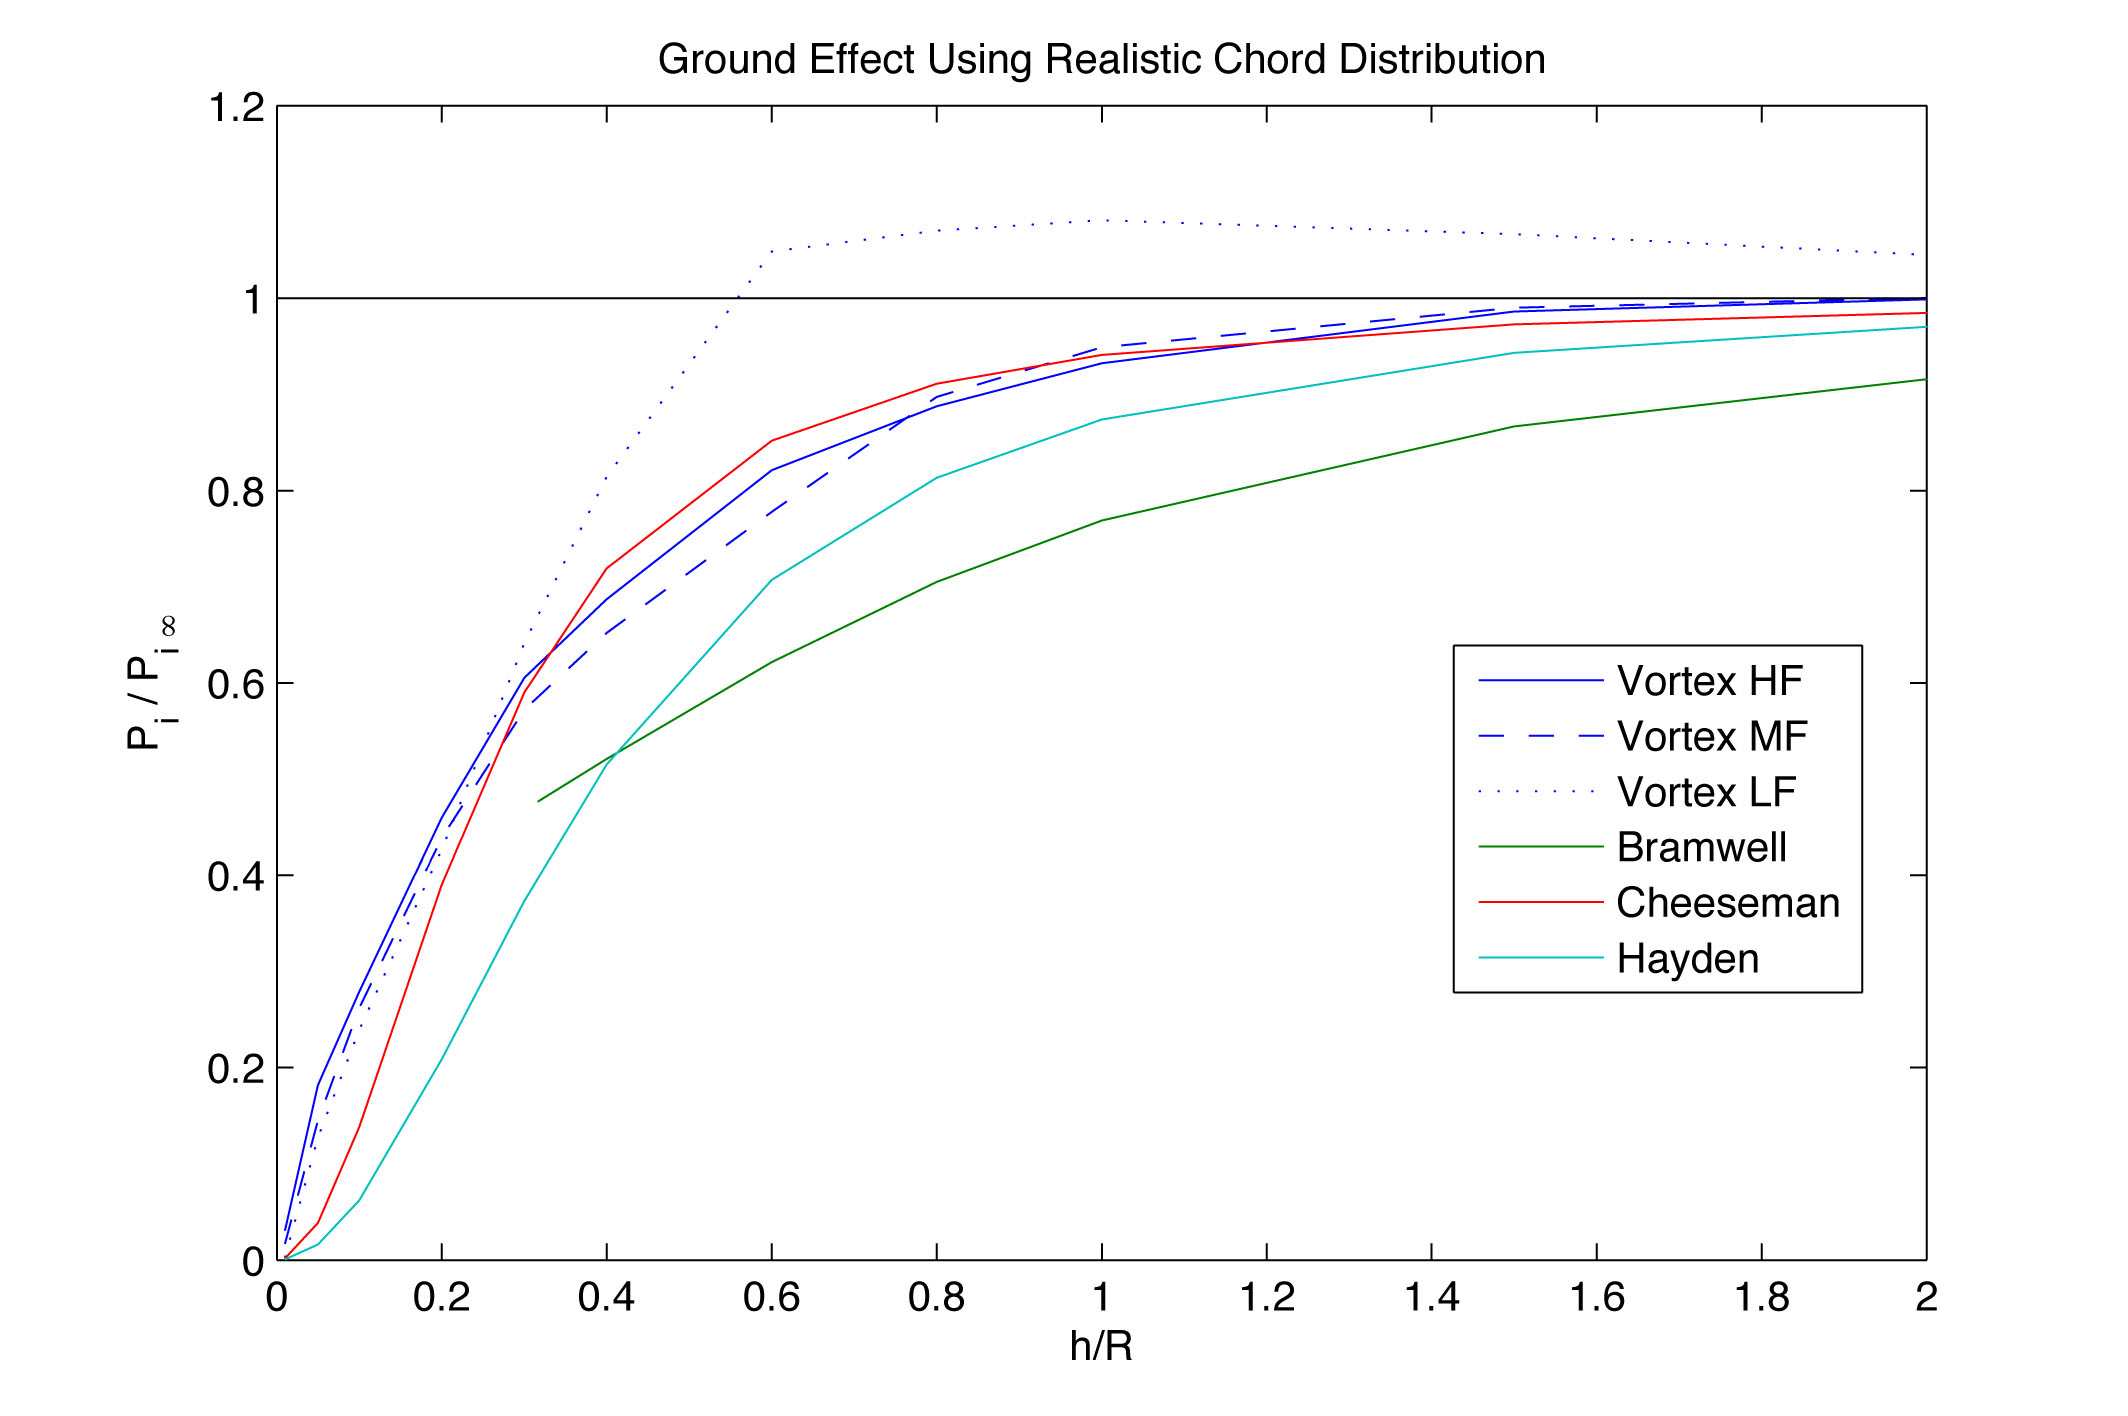 """The fraction of the induced power in ground effect to the induced power in free hover is plotted. """"Vortex HF, MF and LF"""" represent high, medium and low grid resolution in the calculations."""